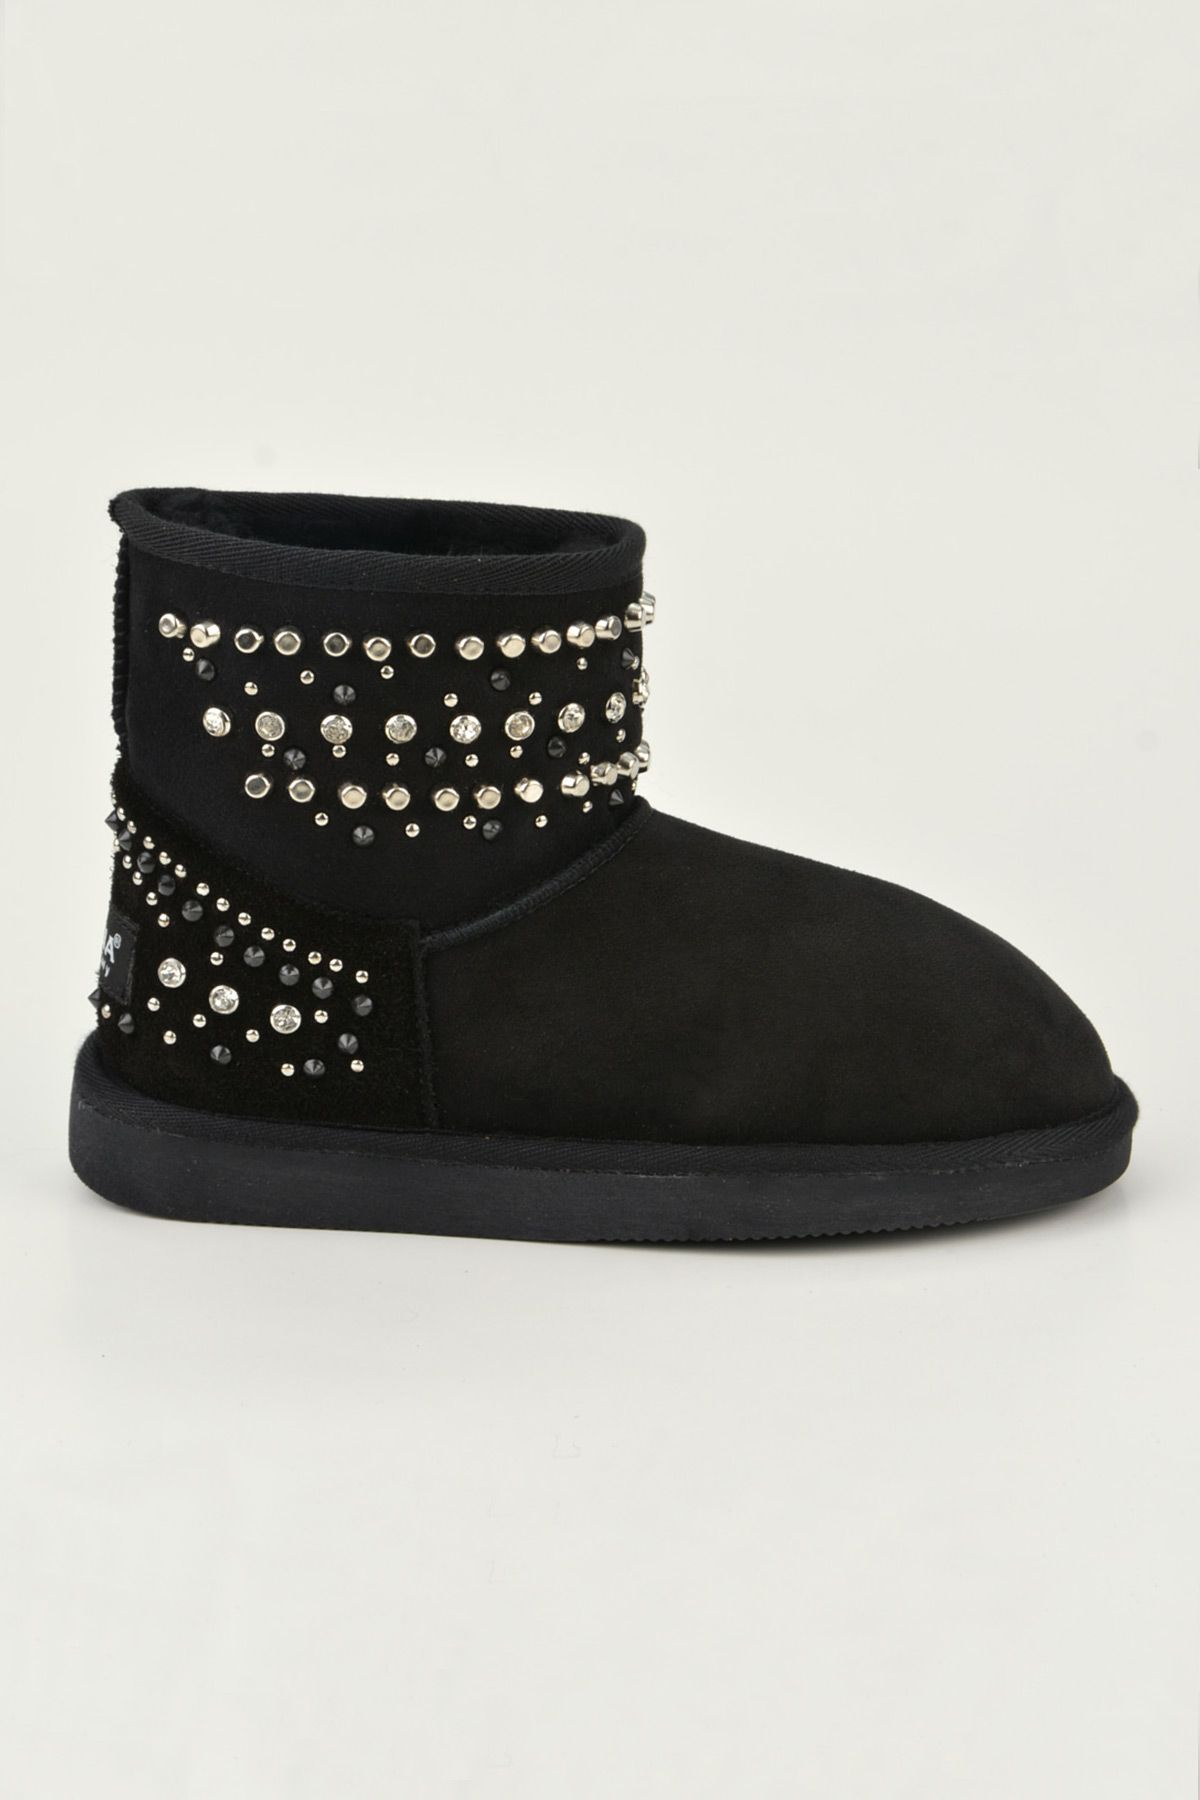 Pegia Women Boots From Genuine Suede And Sheepskin Fur Decorated With Stones 191071 Black